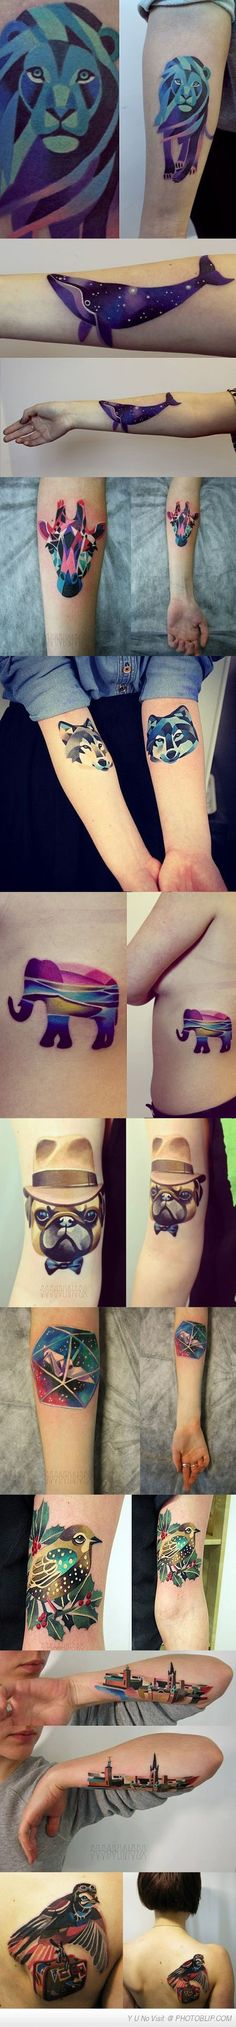 Pretty Freaking Cool Tattoos